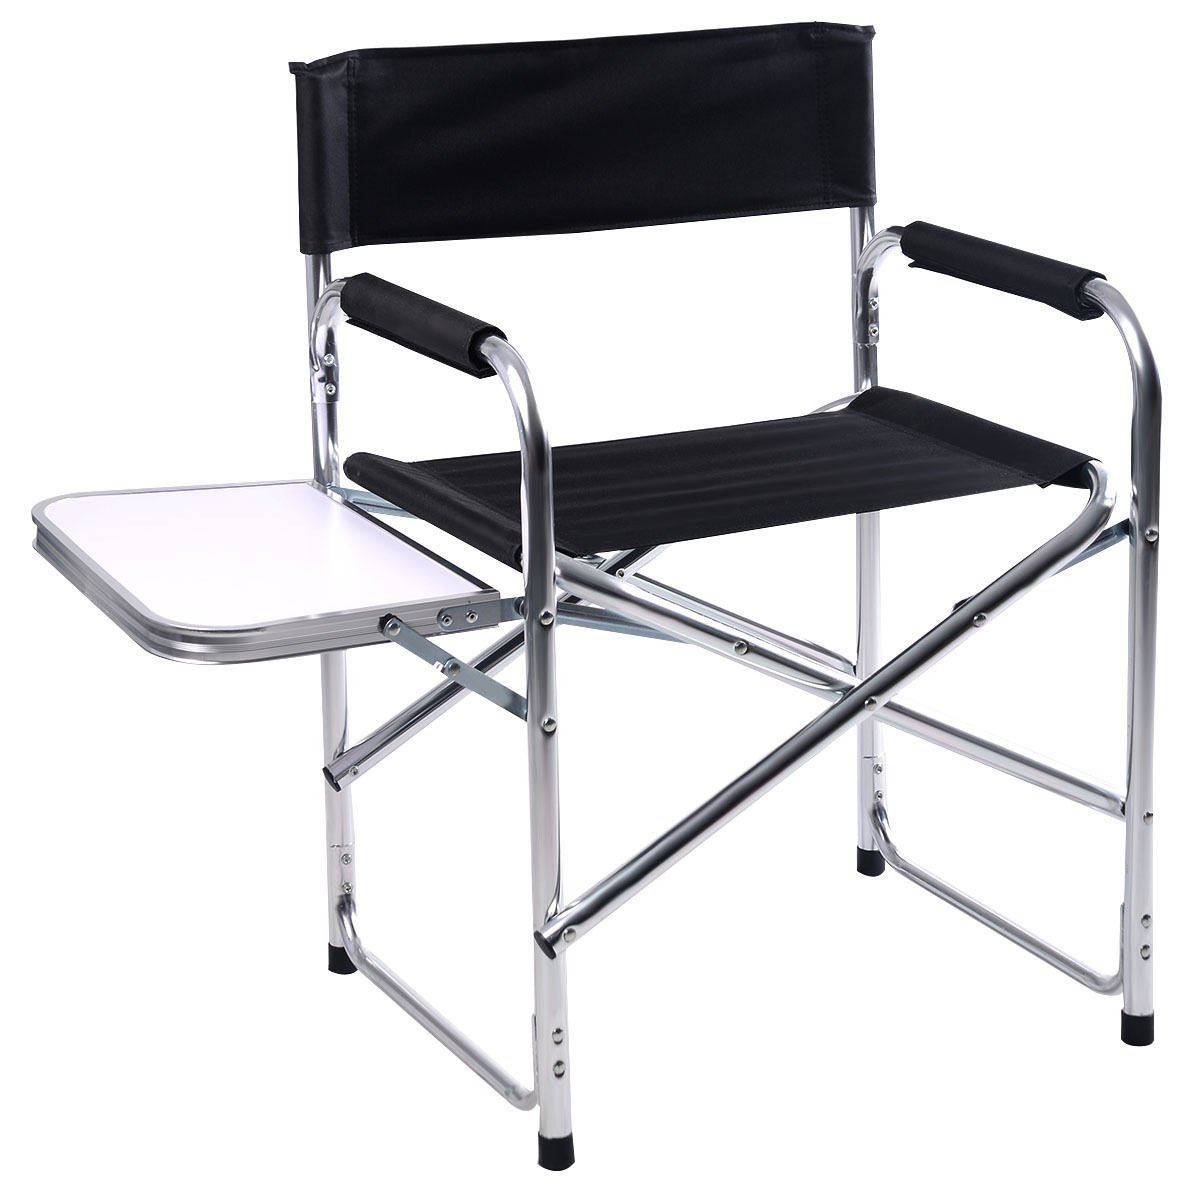 Lotus Analin Aluminum Folding Director's Chair with Side Table Camping Traveling by Lotus Analin